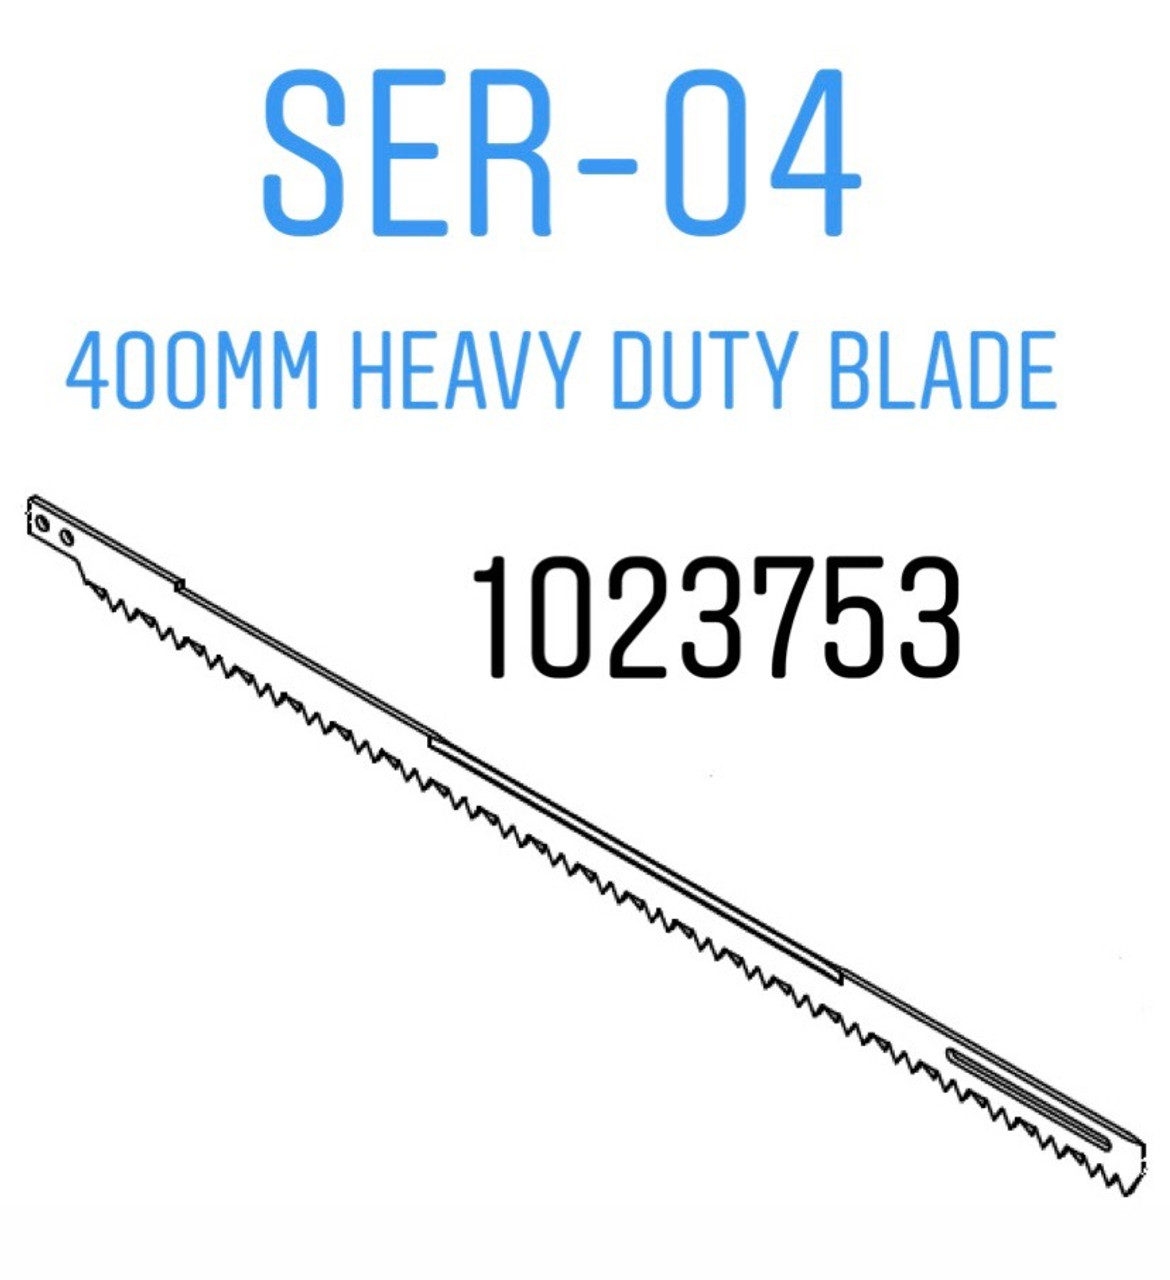 Jarvis SER-04 -- 400mm Saw Blade - Heavy Duty - 1023753